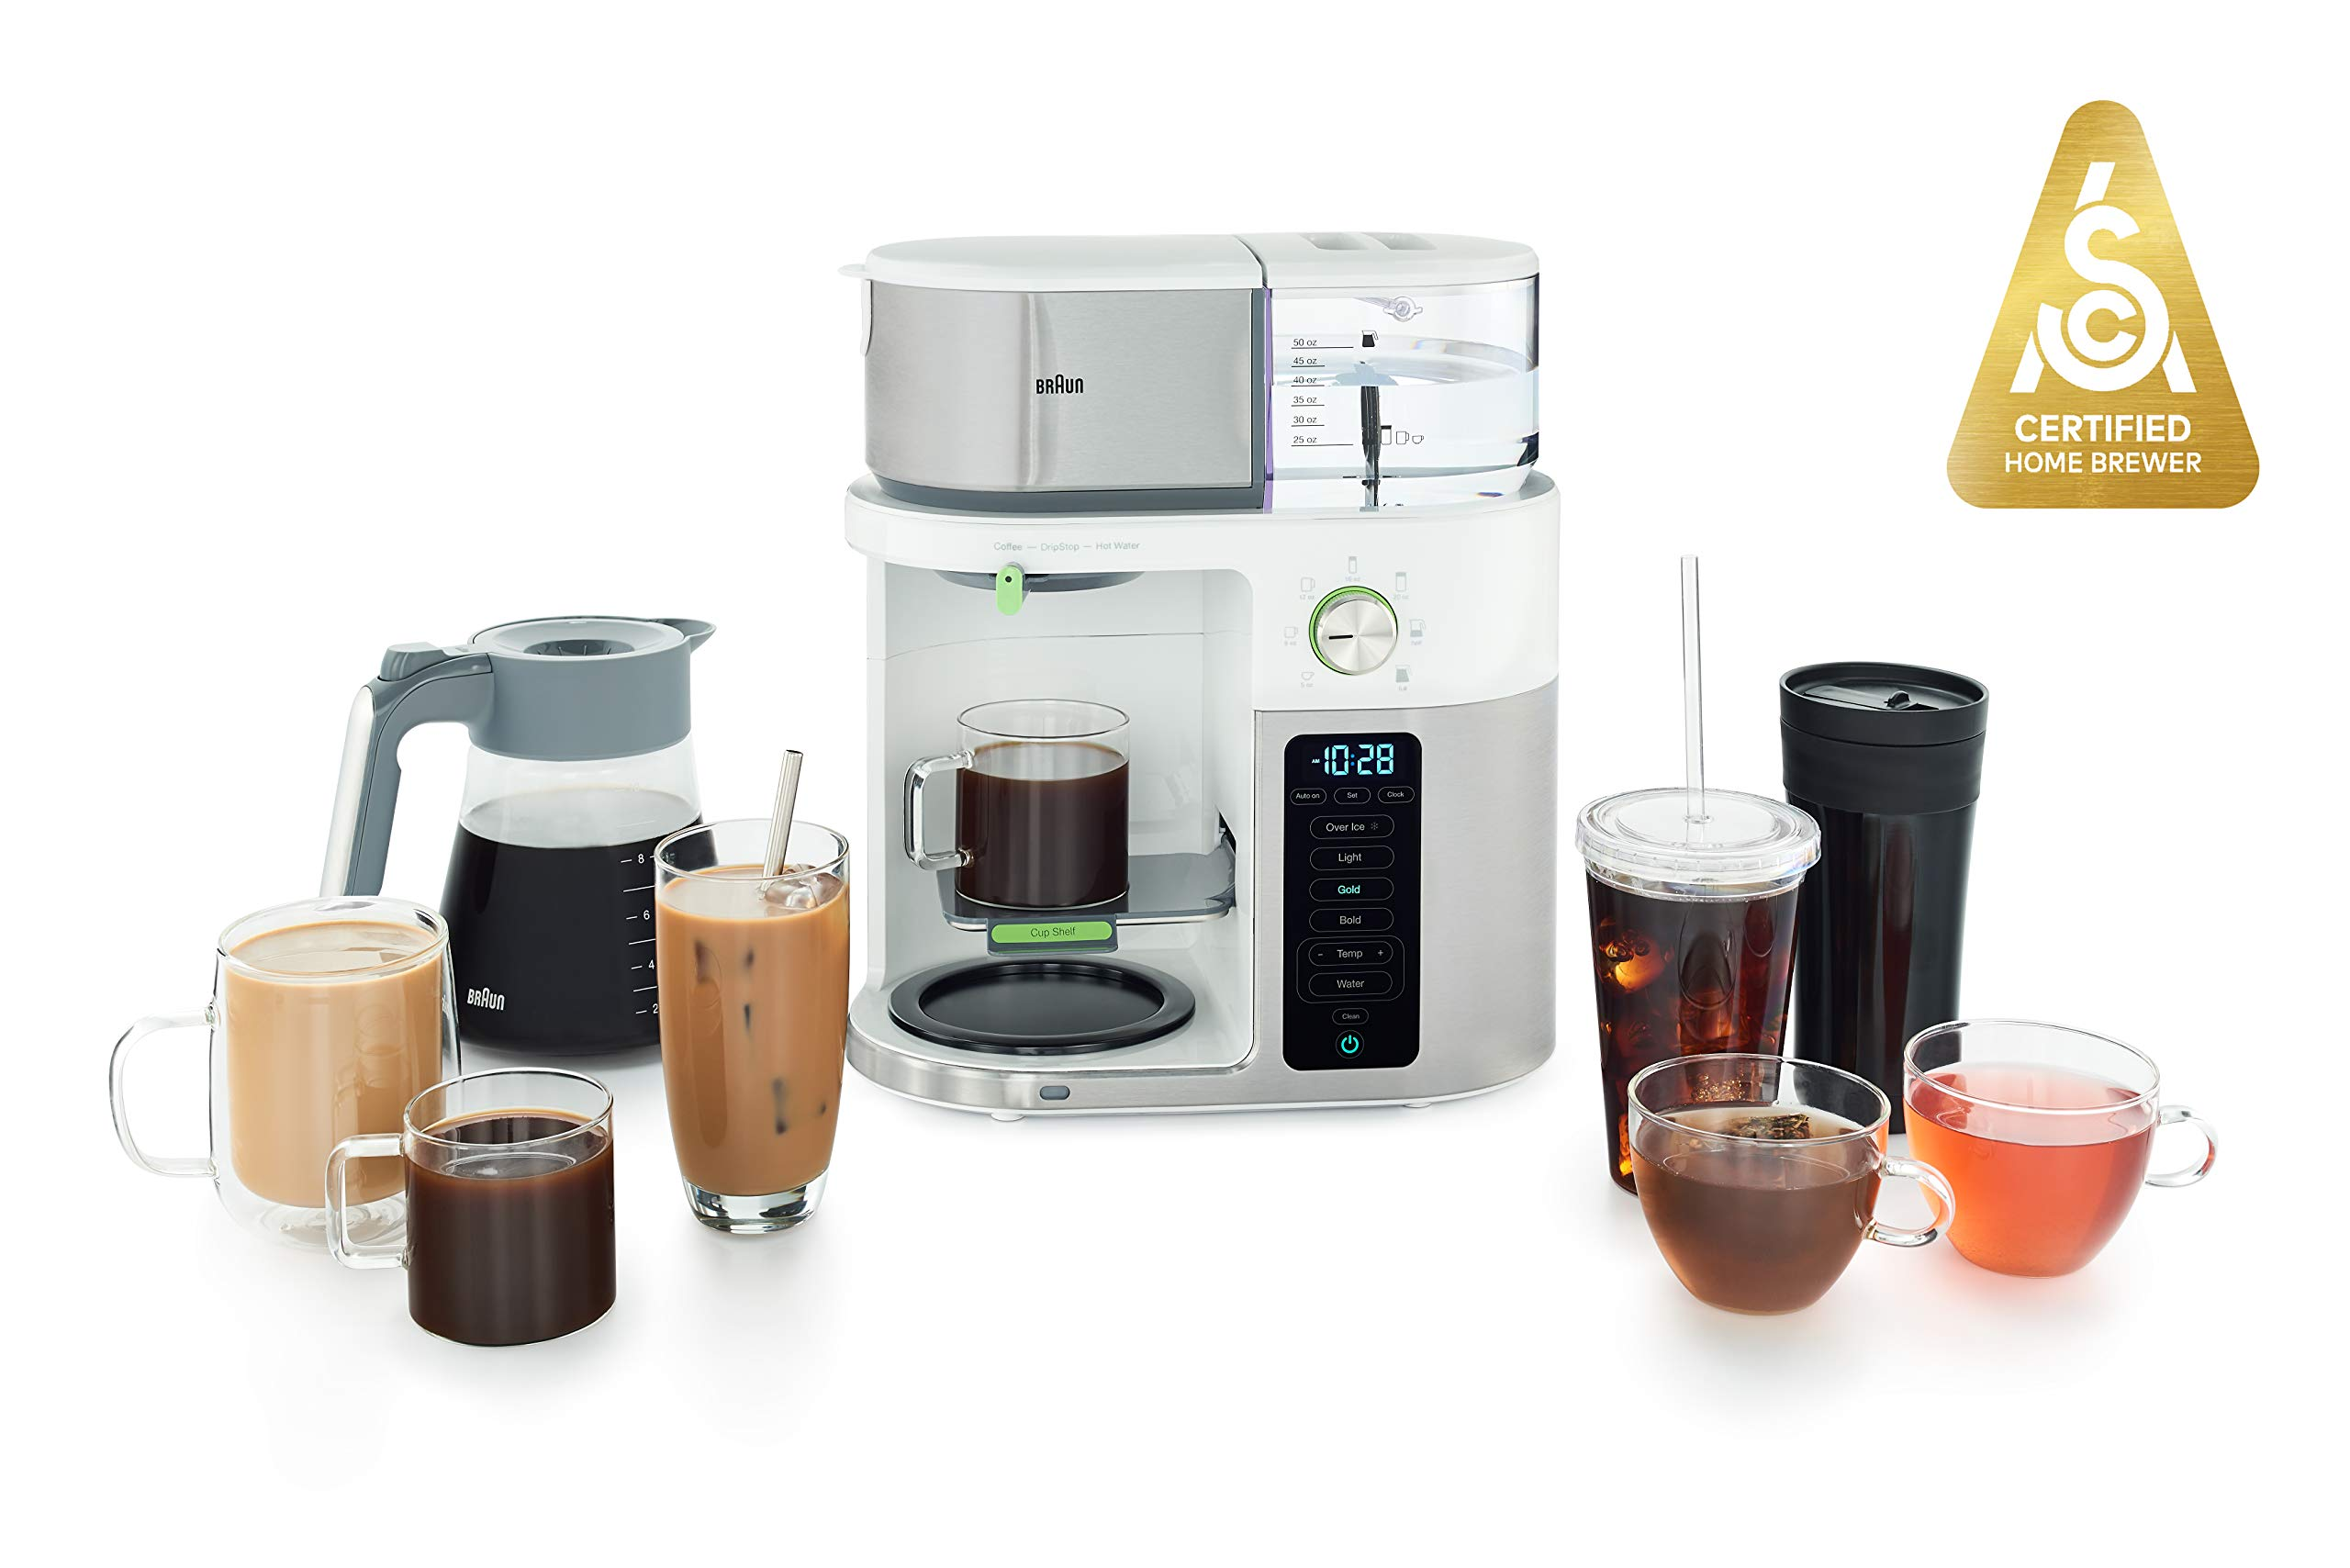 Braun MultiServe Coffee Machine 7 Programmable Brew Sizes / 3 Strengths + Iced Coffee & Hot Water for Tea, Glass Carafe (10-Cup), White, KF9150WH